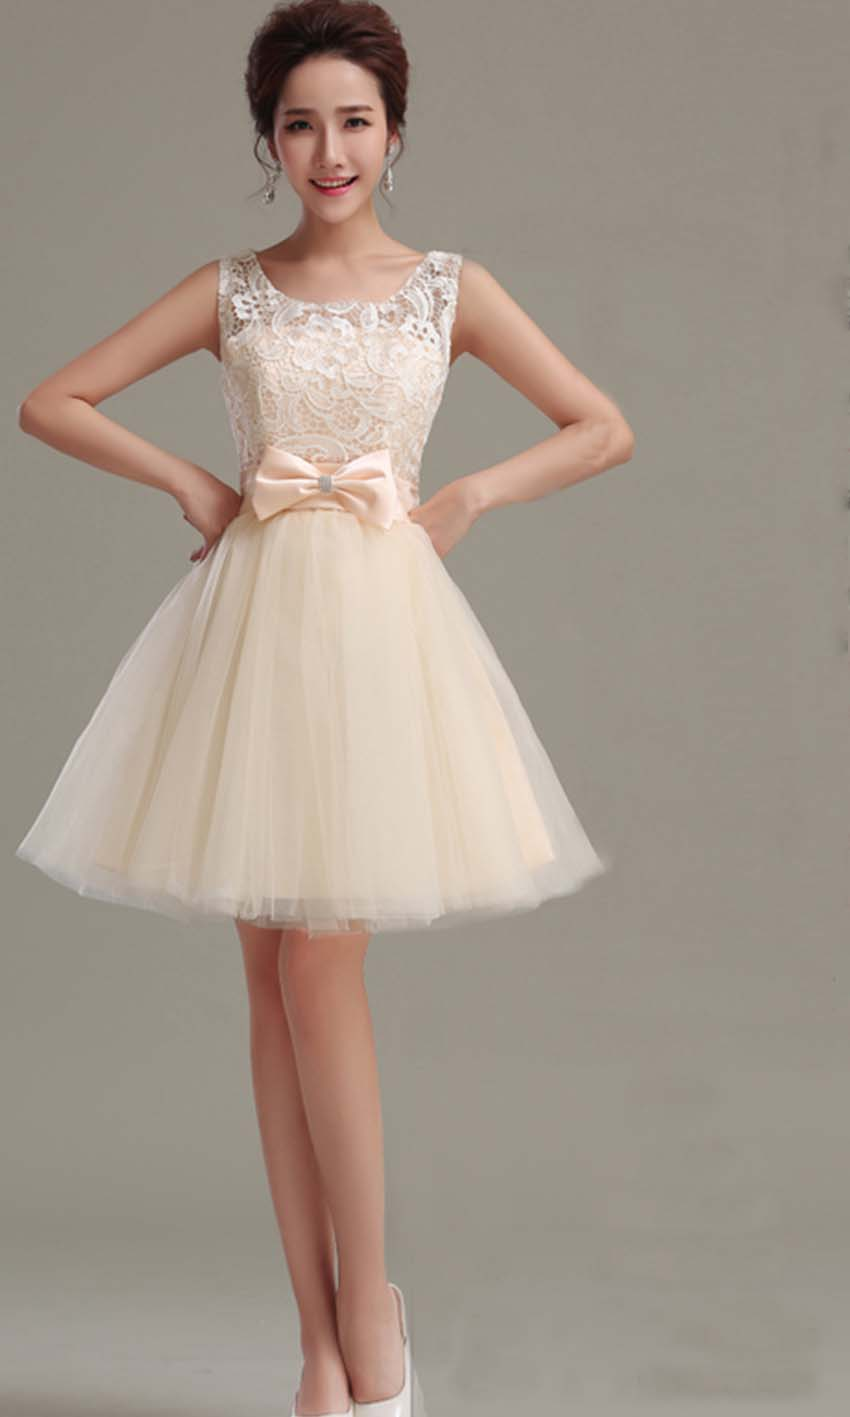 Cute Beige Retro Bow Knot Short Prom Gown KSP348 [KSP348] - £84.00 ...